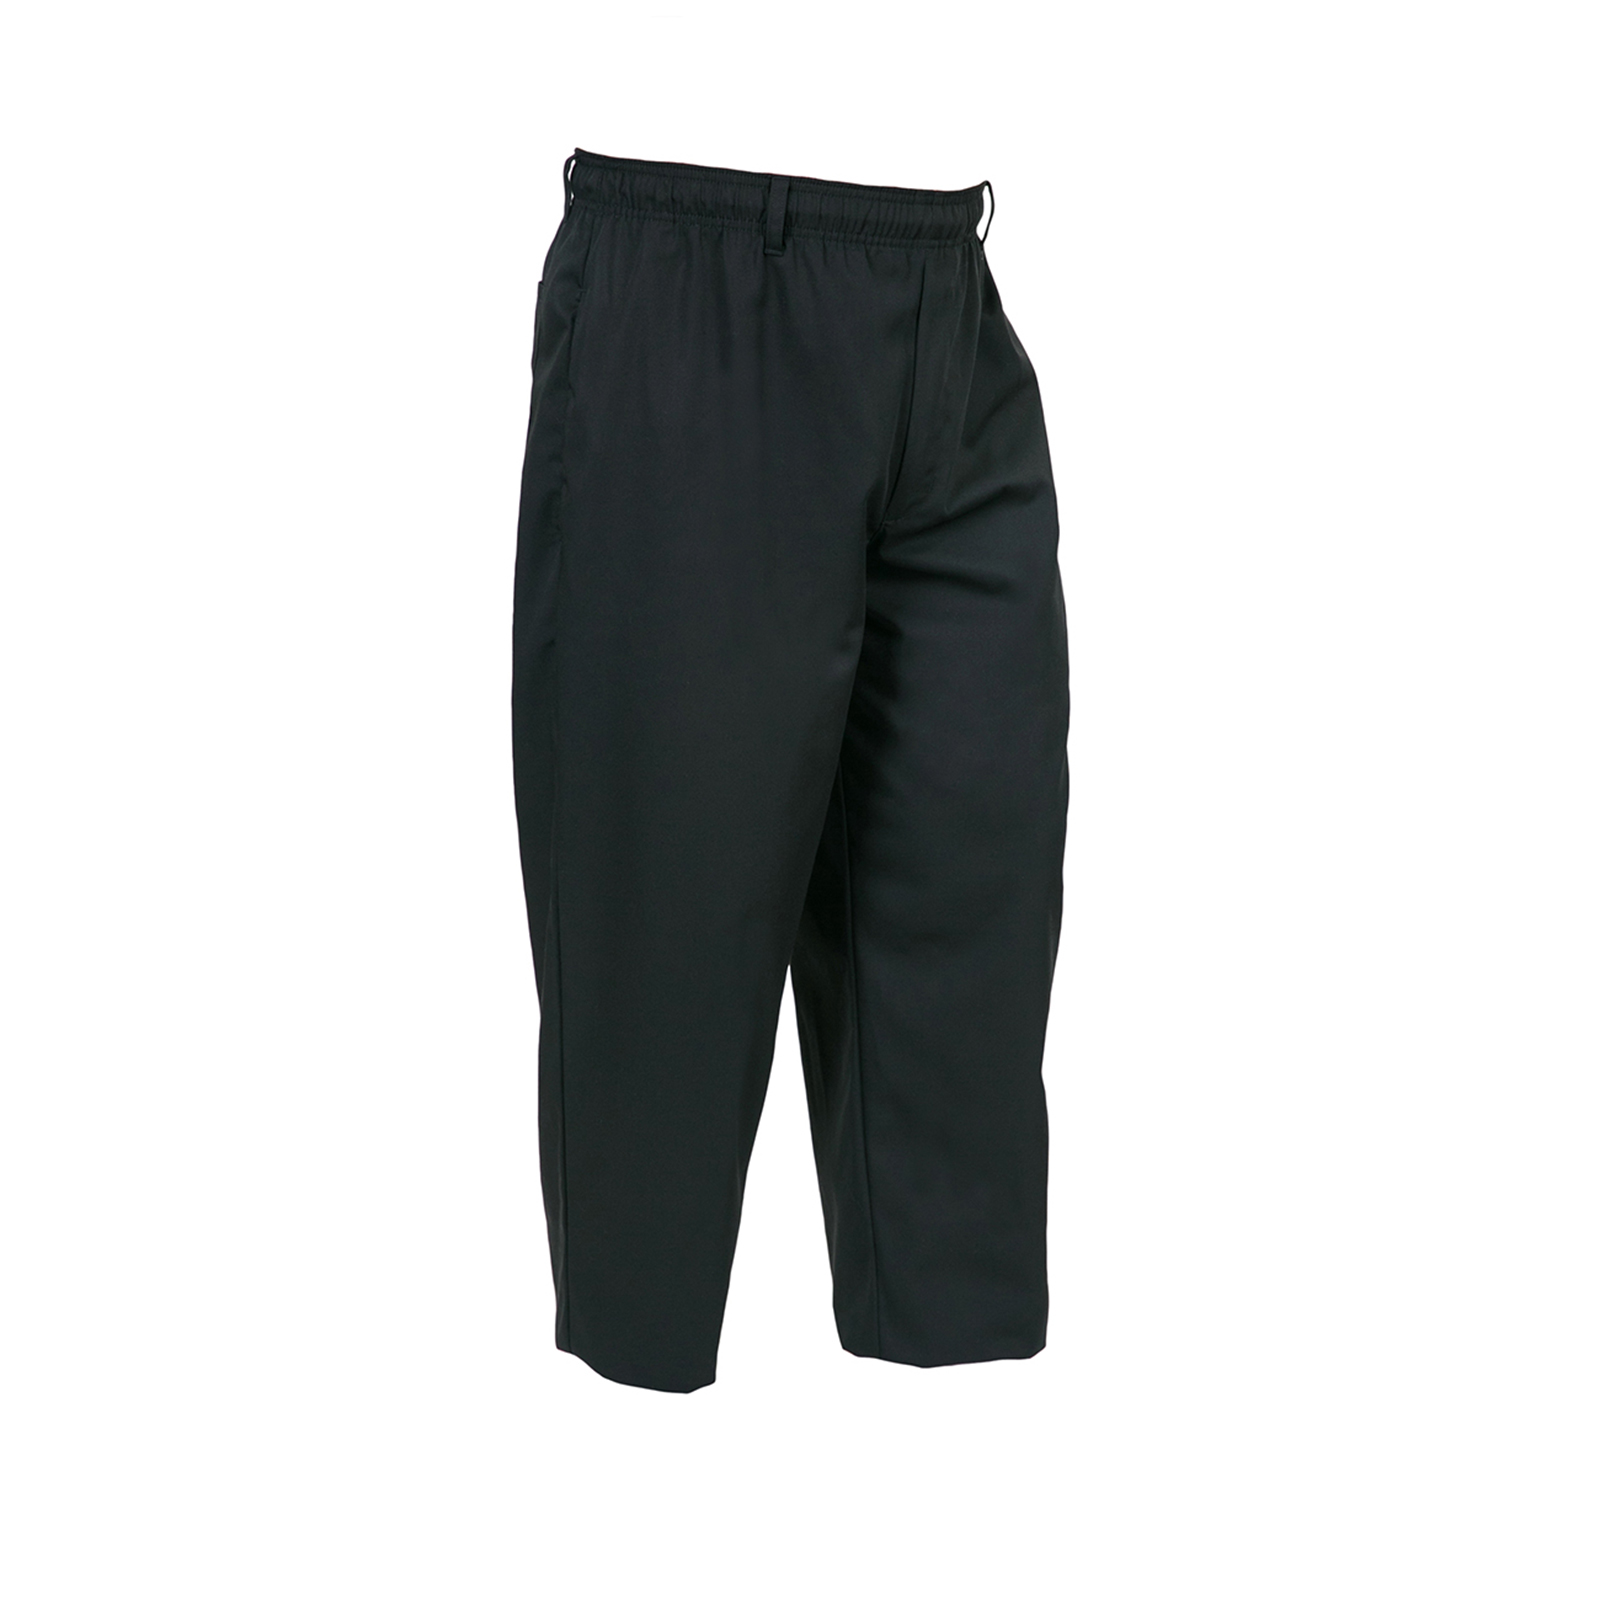 Mercer Culinary M60050BKXS chef's pants